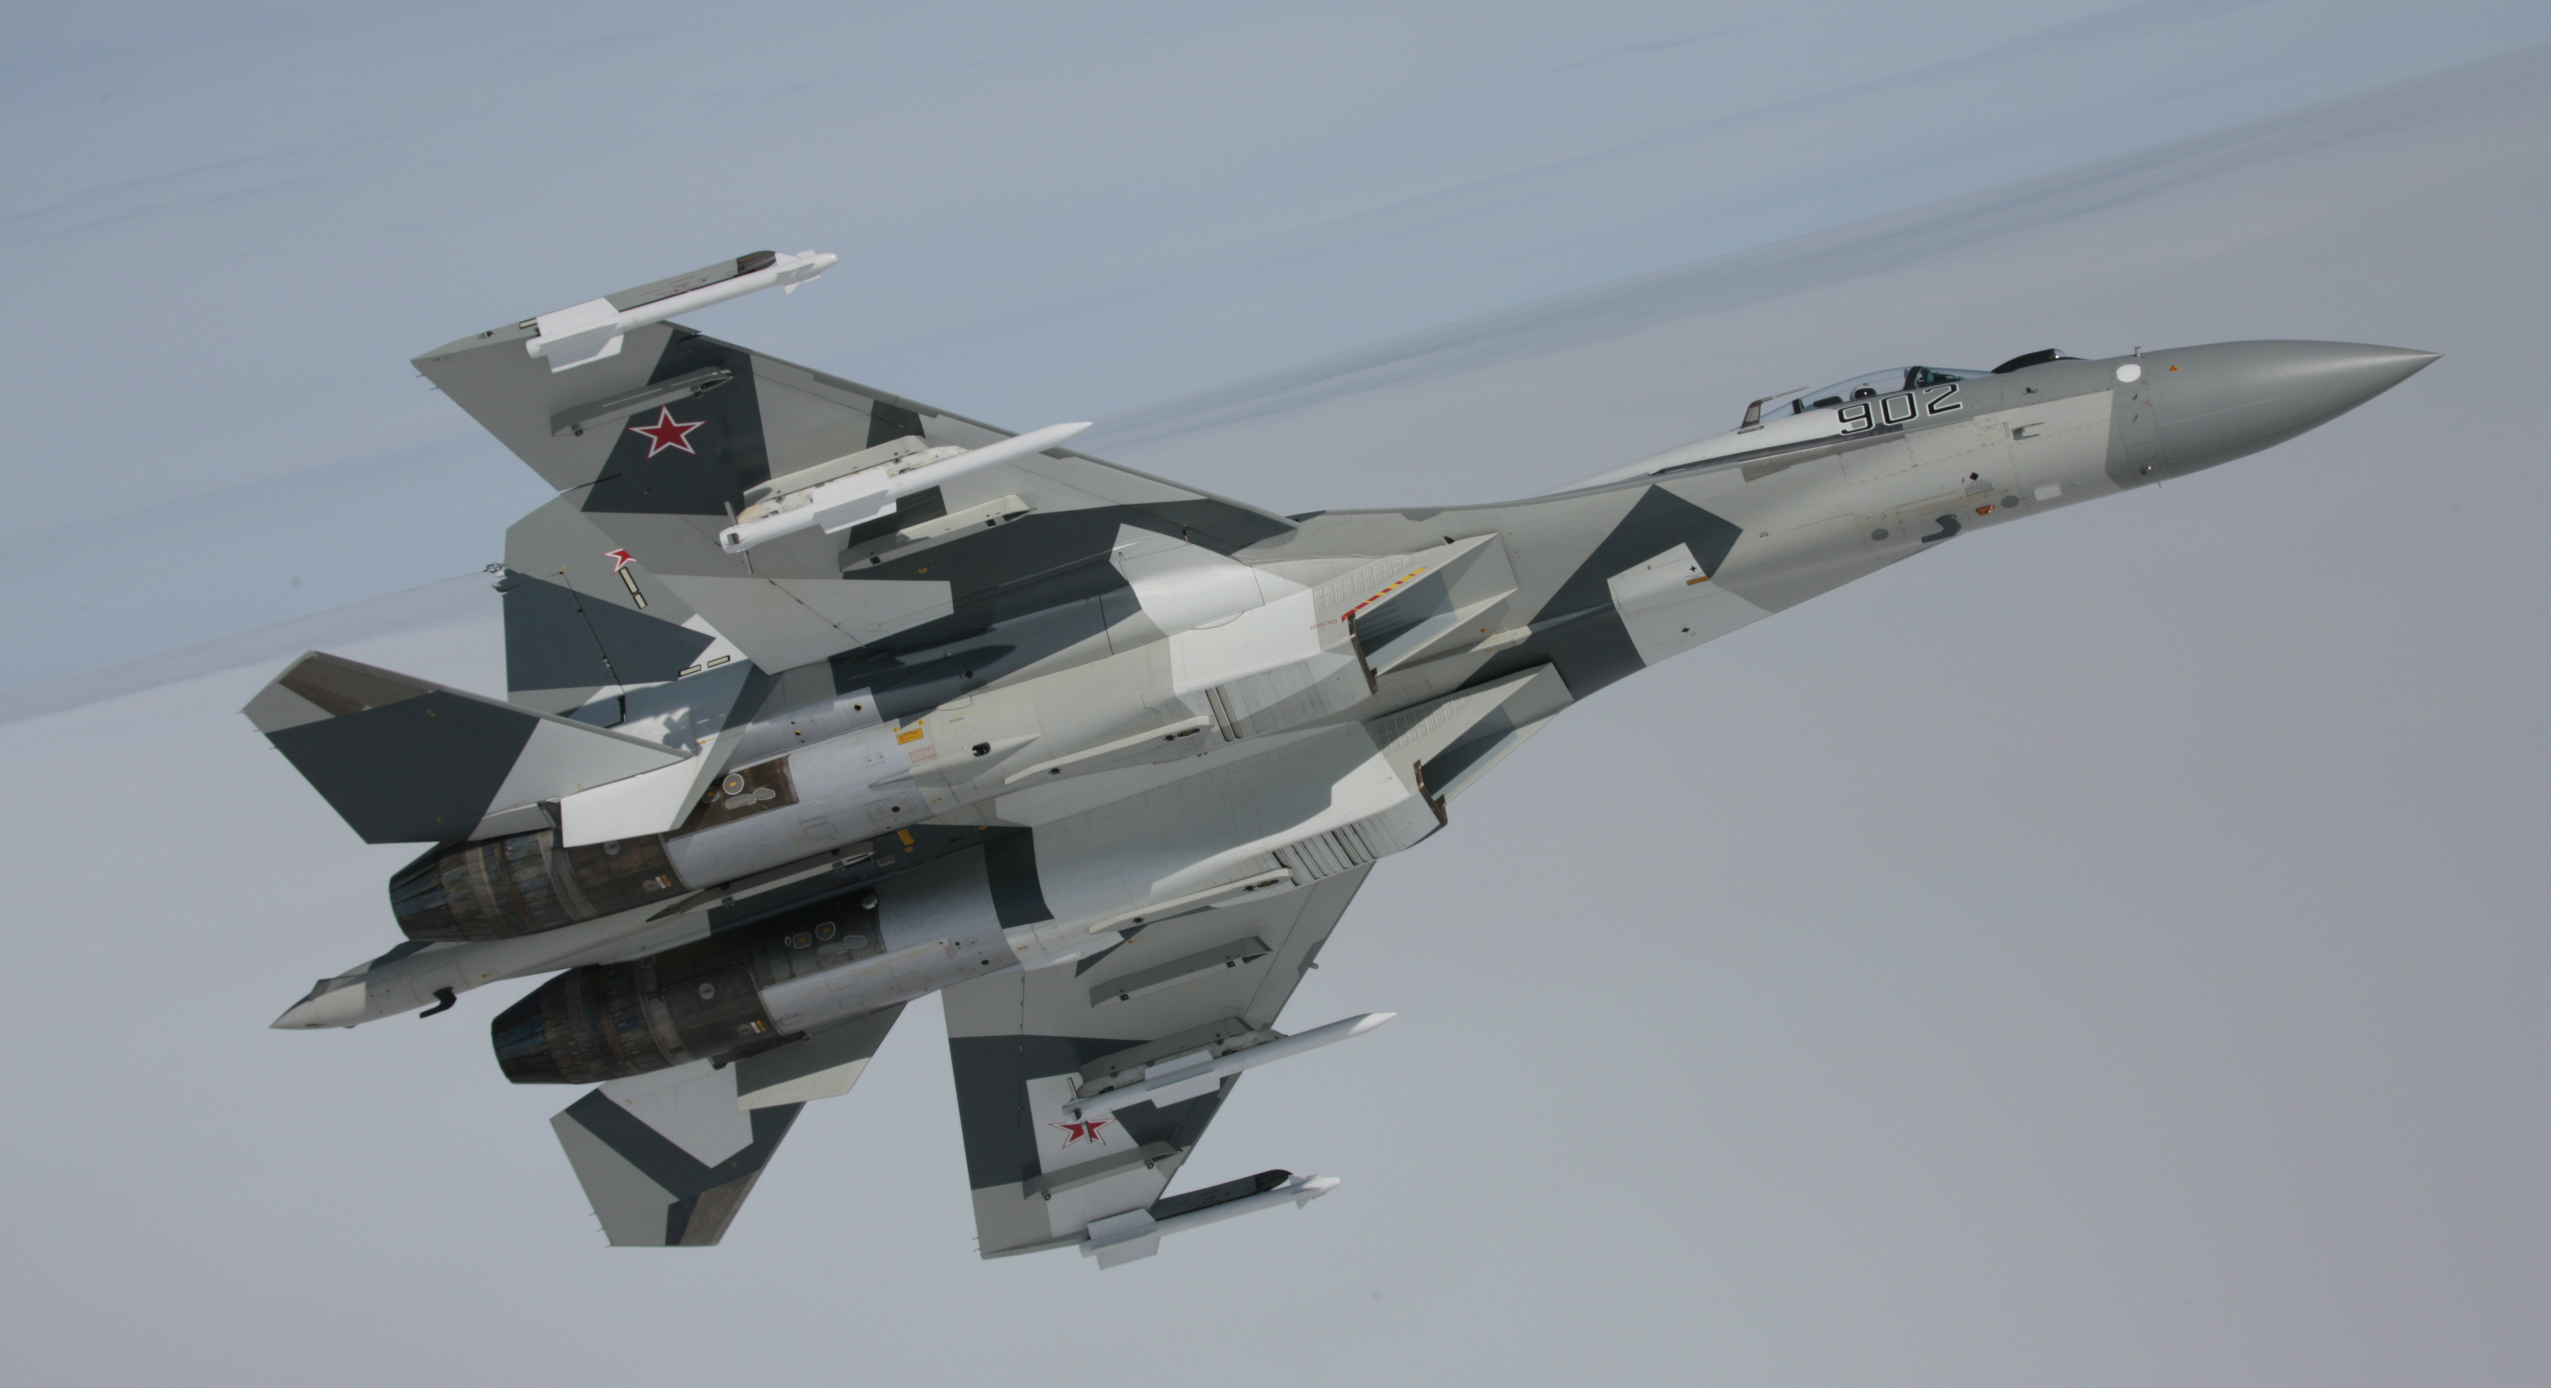 The Sukhoi Su-30/35. Source: Press Photo